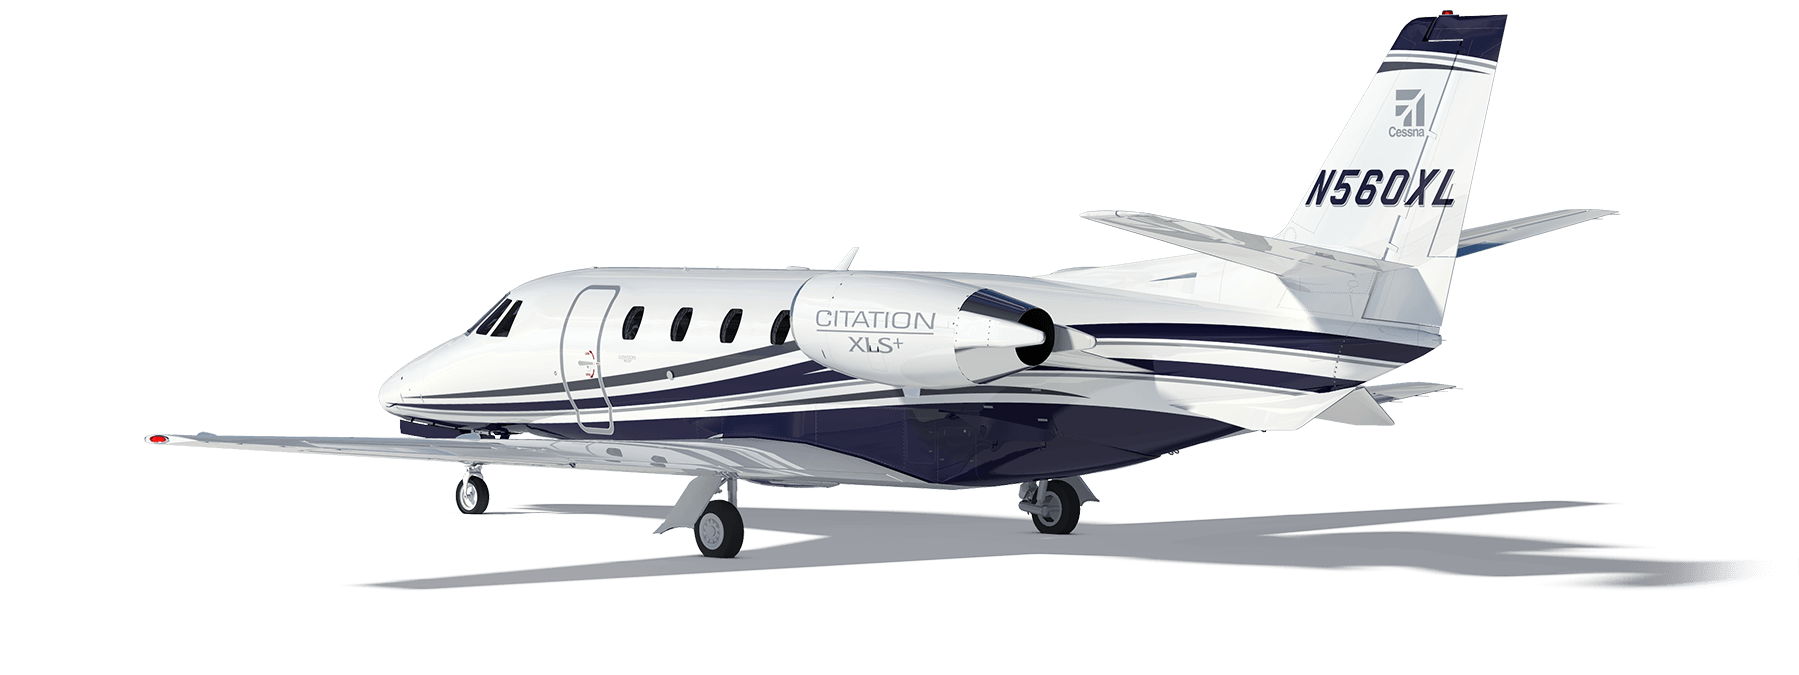 Citation xls move your mouse over the image to pause malvernweather Choice Image